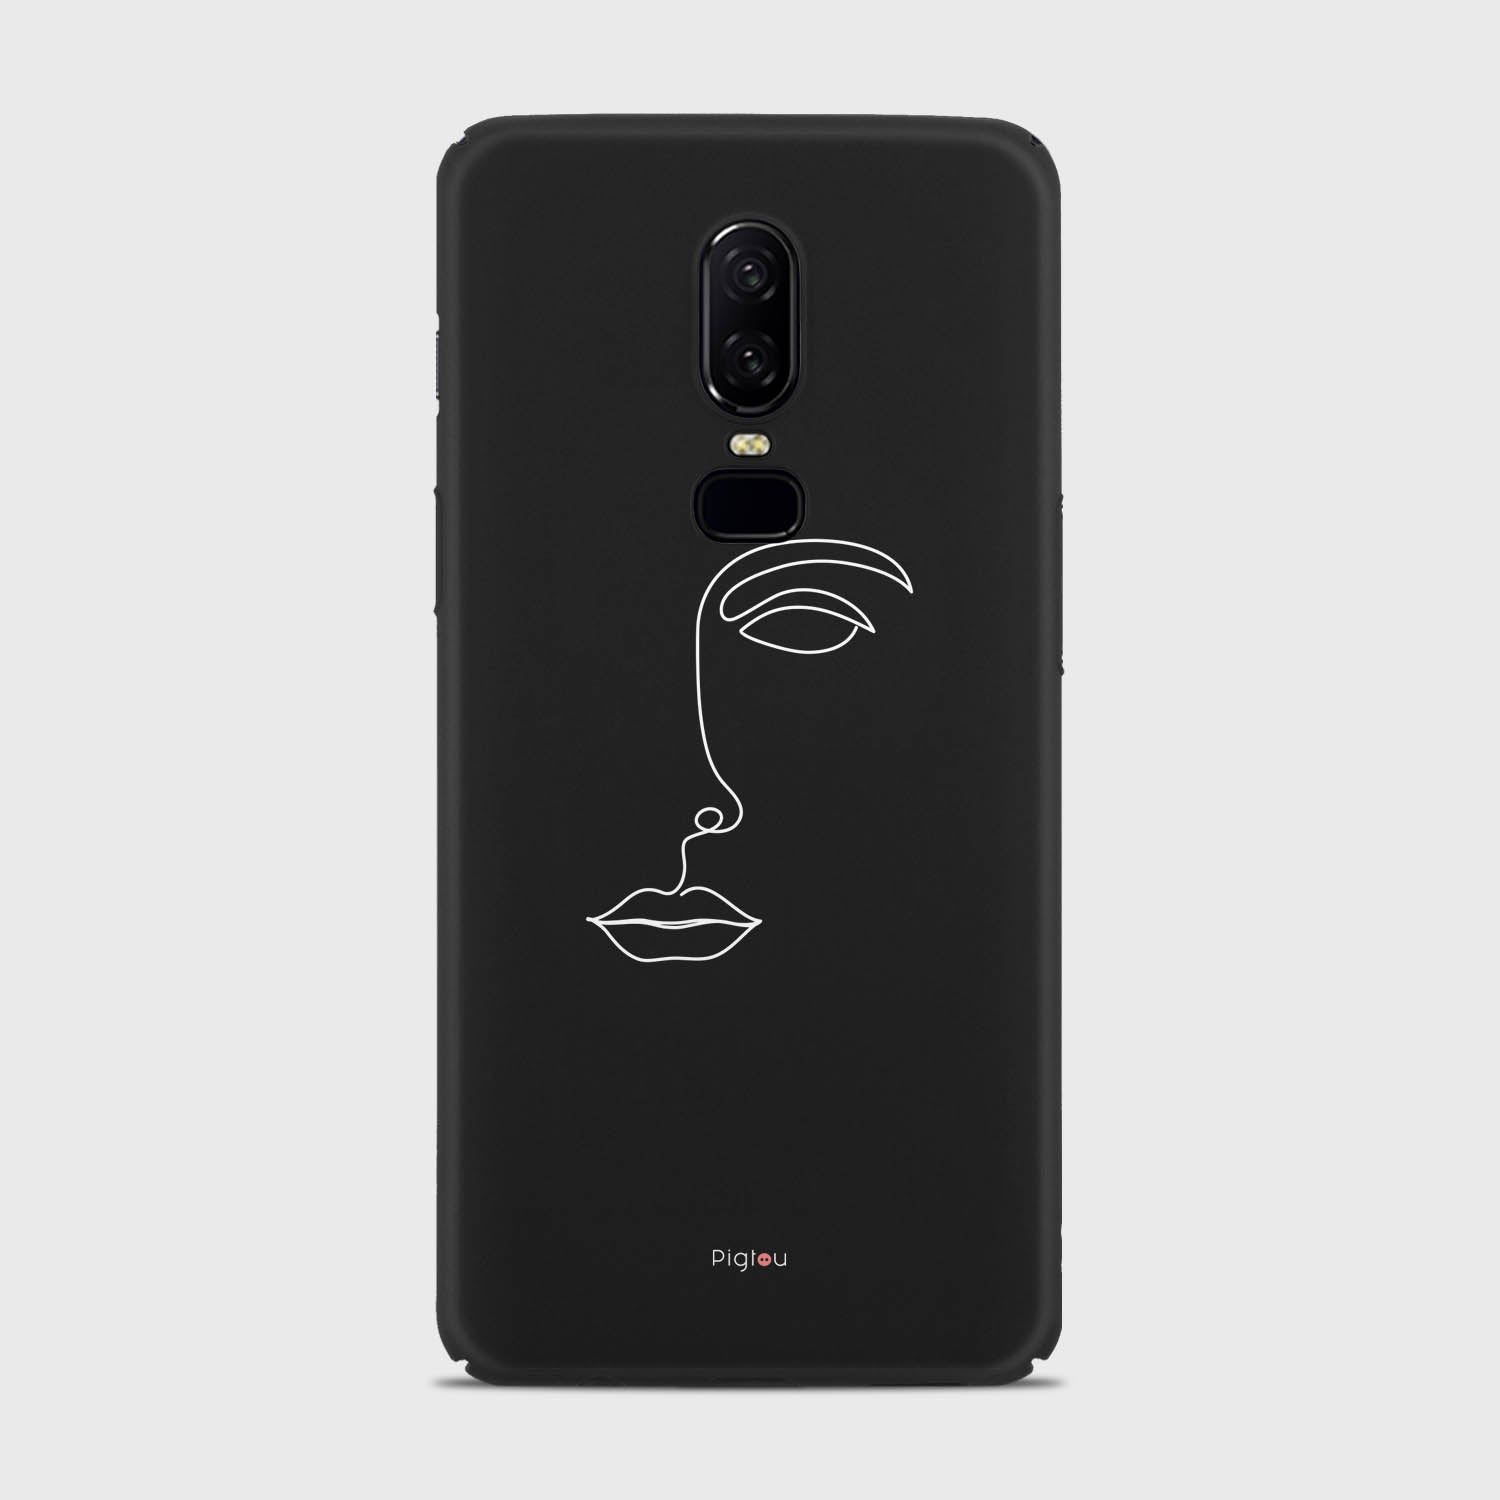 SILHOUETTE FACE Oneplus 6 cases | Pigtou